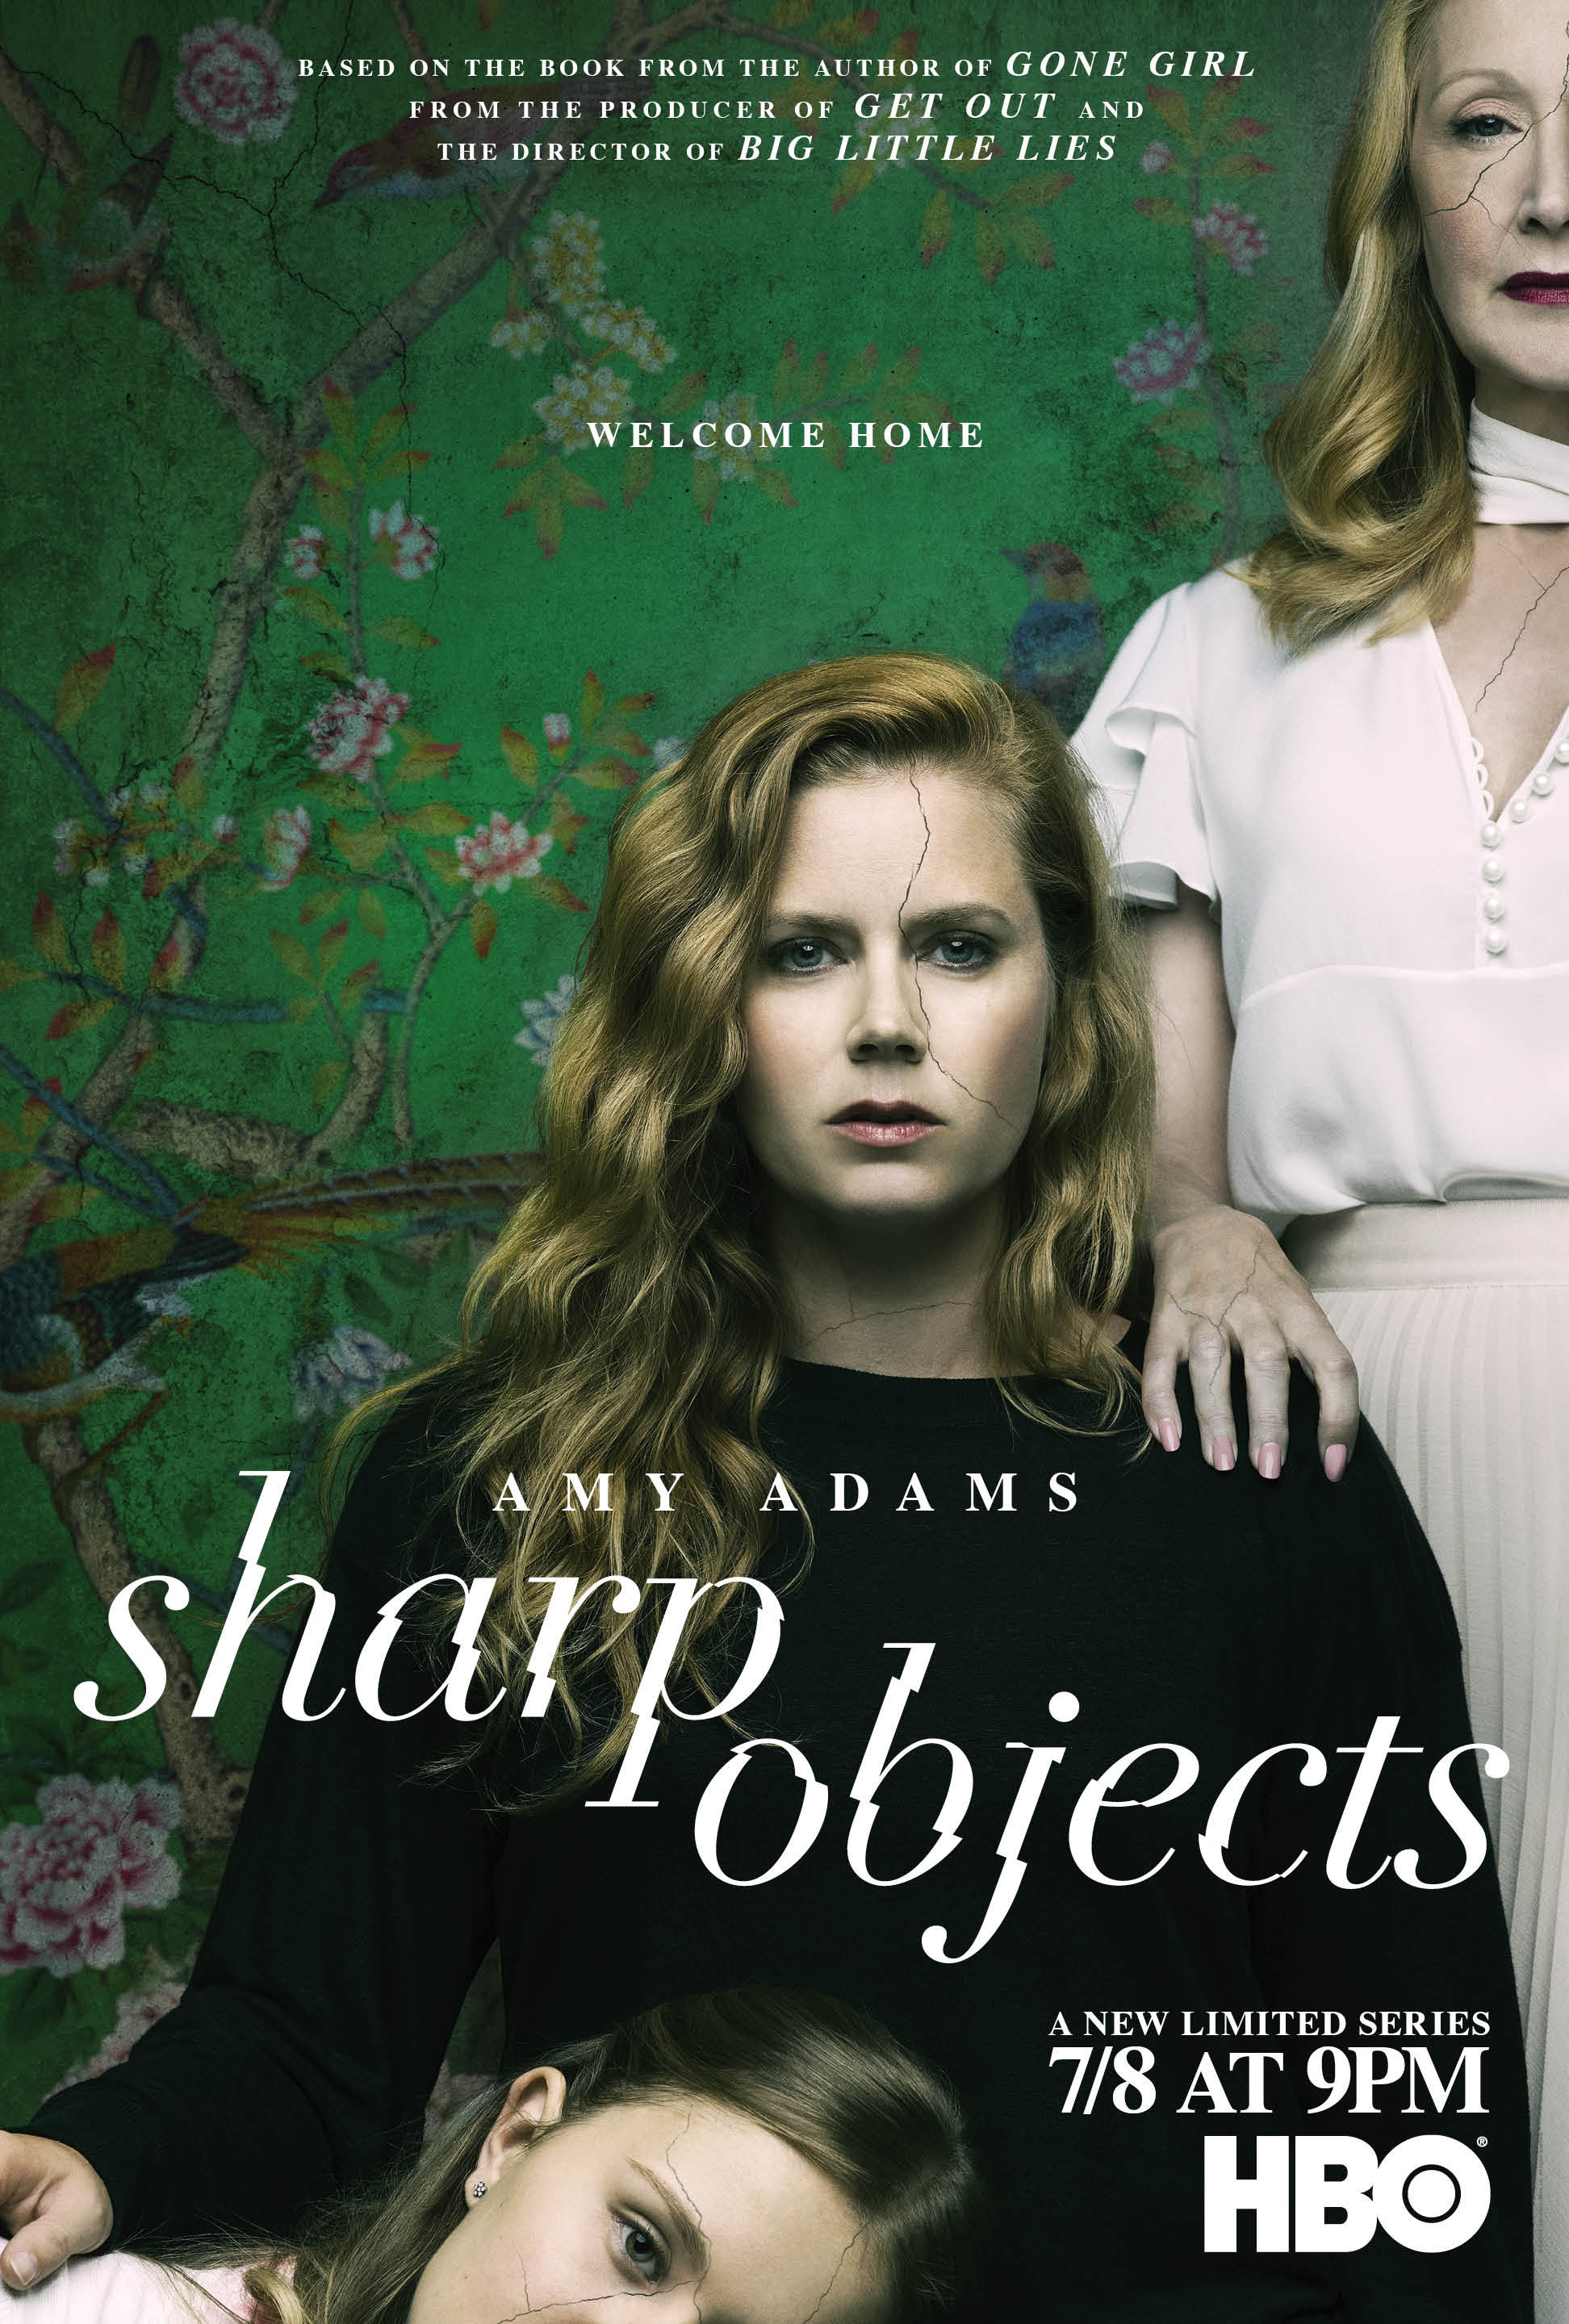 Othersode #19: Triggered by Wallpaper / Sharp Objects / Interview with Sam Maggs - It's finally here! This week, our long-awaited Sharp Objects discussion is finally ready for your ears. (Don't tell Mama.) Joined by special guest and honorary squad member Janet, we get deep into spoiler territory as we chat about the beloved HBO miniseries, currently available to stream in its entirety. Conversation topics include Missouri, southern accents, mood music, and distressingly beautiful wallpaper. In the second half of the episode, Kelli interviews author and pop culture expert Sam Maggs about her latest book, Girl Squads, which will be available October 2nd. Kelli and Sam talk about girl squads of yore, the erasure of important women throughout history, and—you guessed it—Josie and the Pussycats. Finally, our usual plea: send us comments and questions at thesquad@booksquadgoals.com, rate and review, and SUBSCRIBE, y'all.